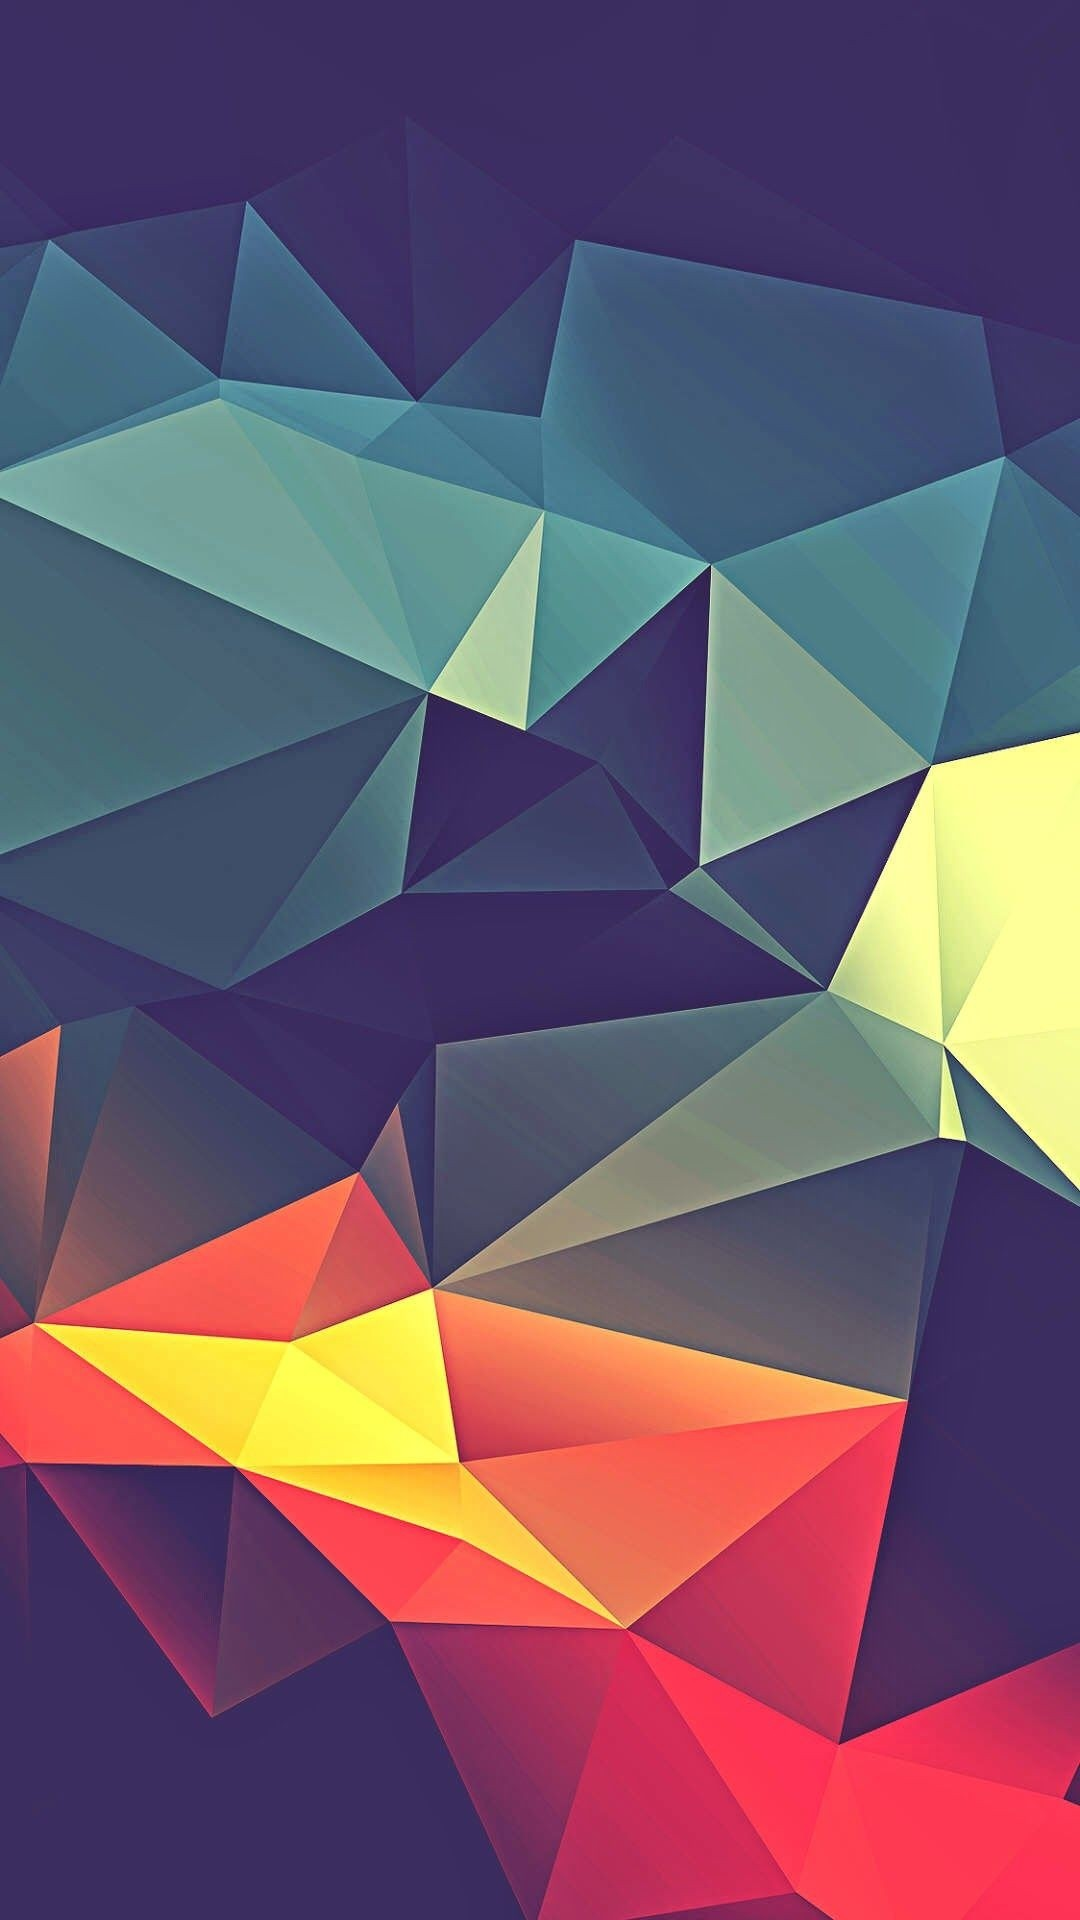 5 Days Of Awesome Wallpapers Geometric Wallpapers   E Crypto News 1080x1920